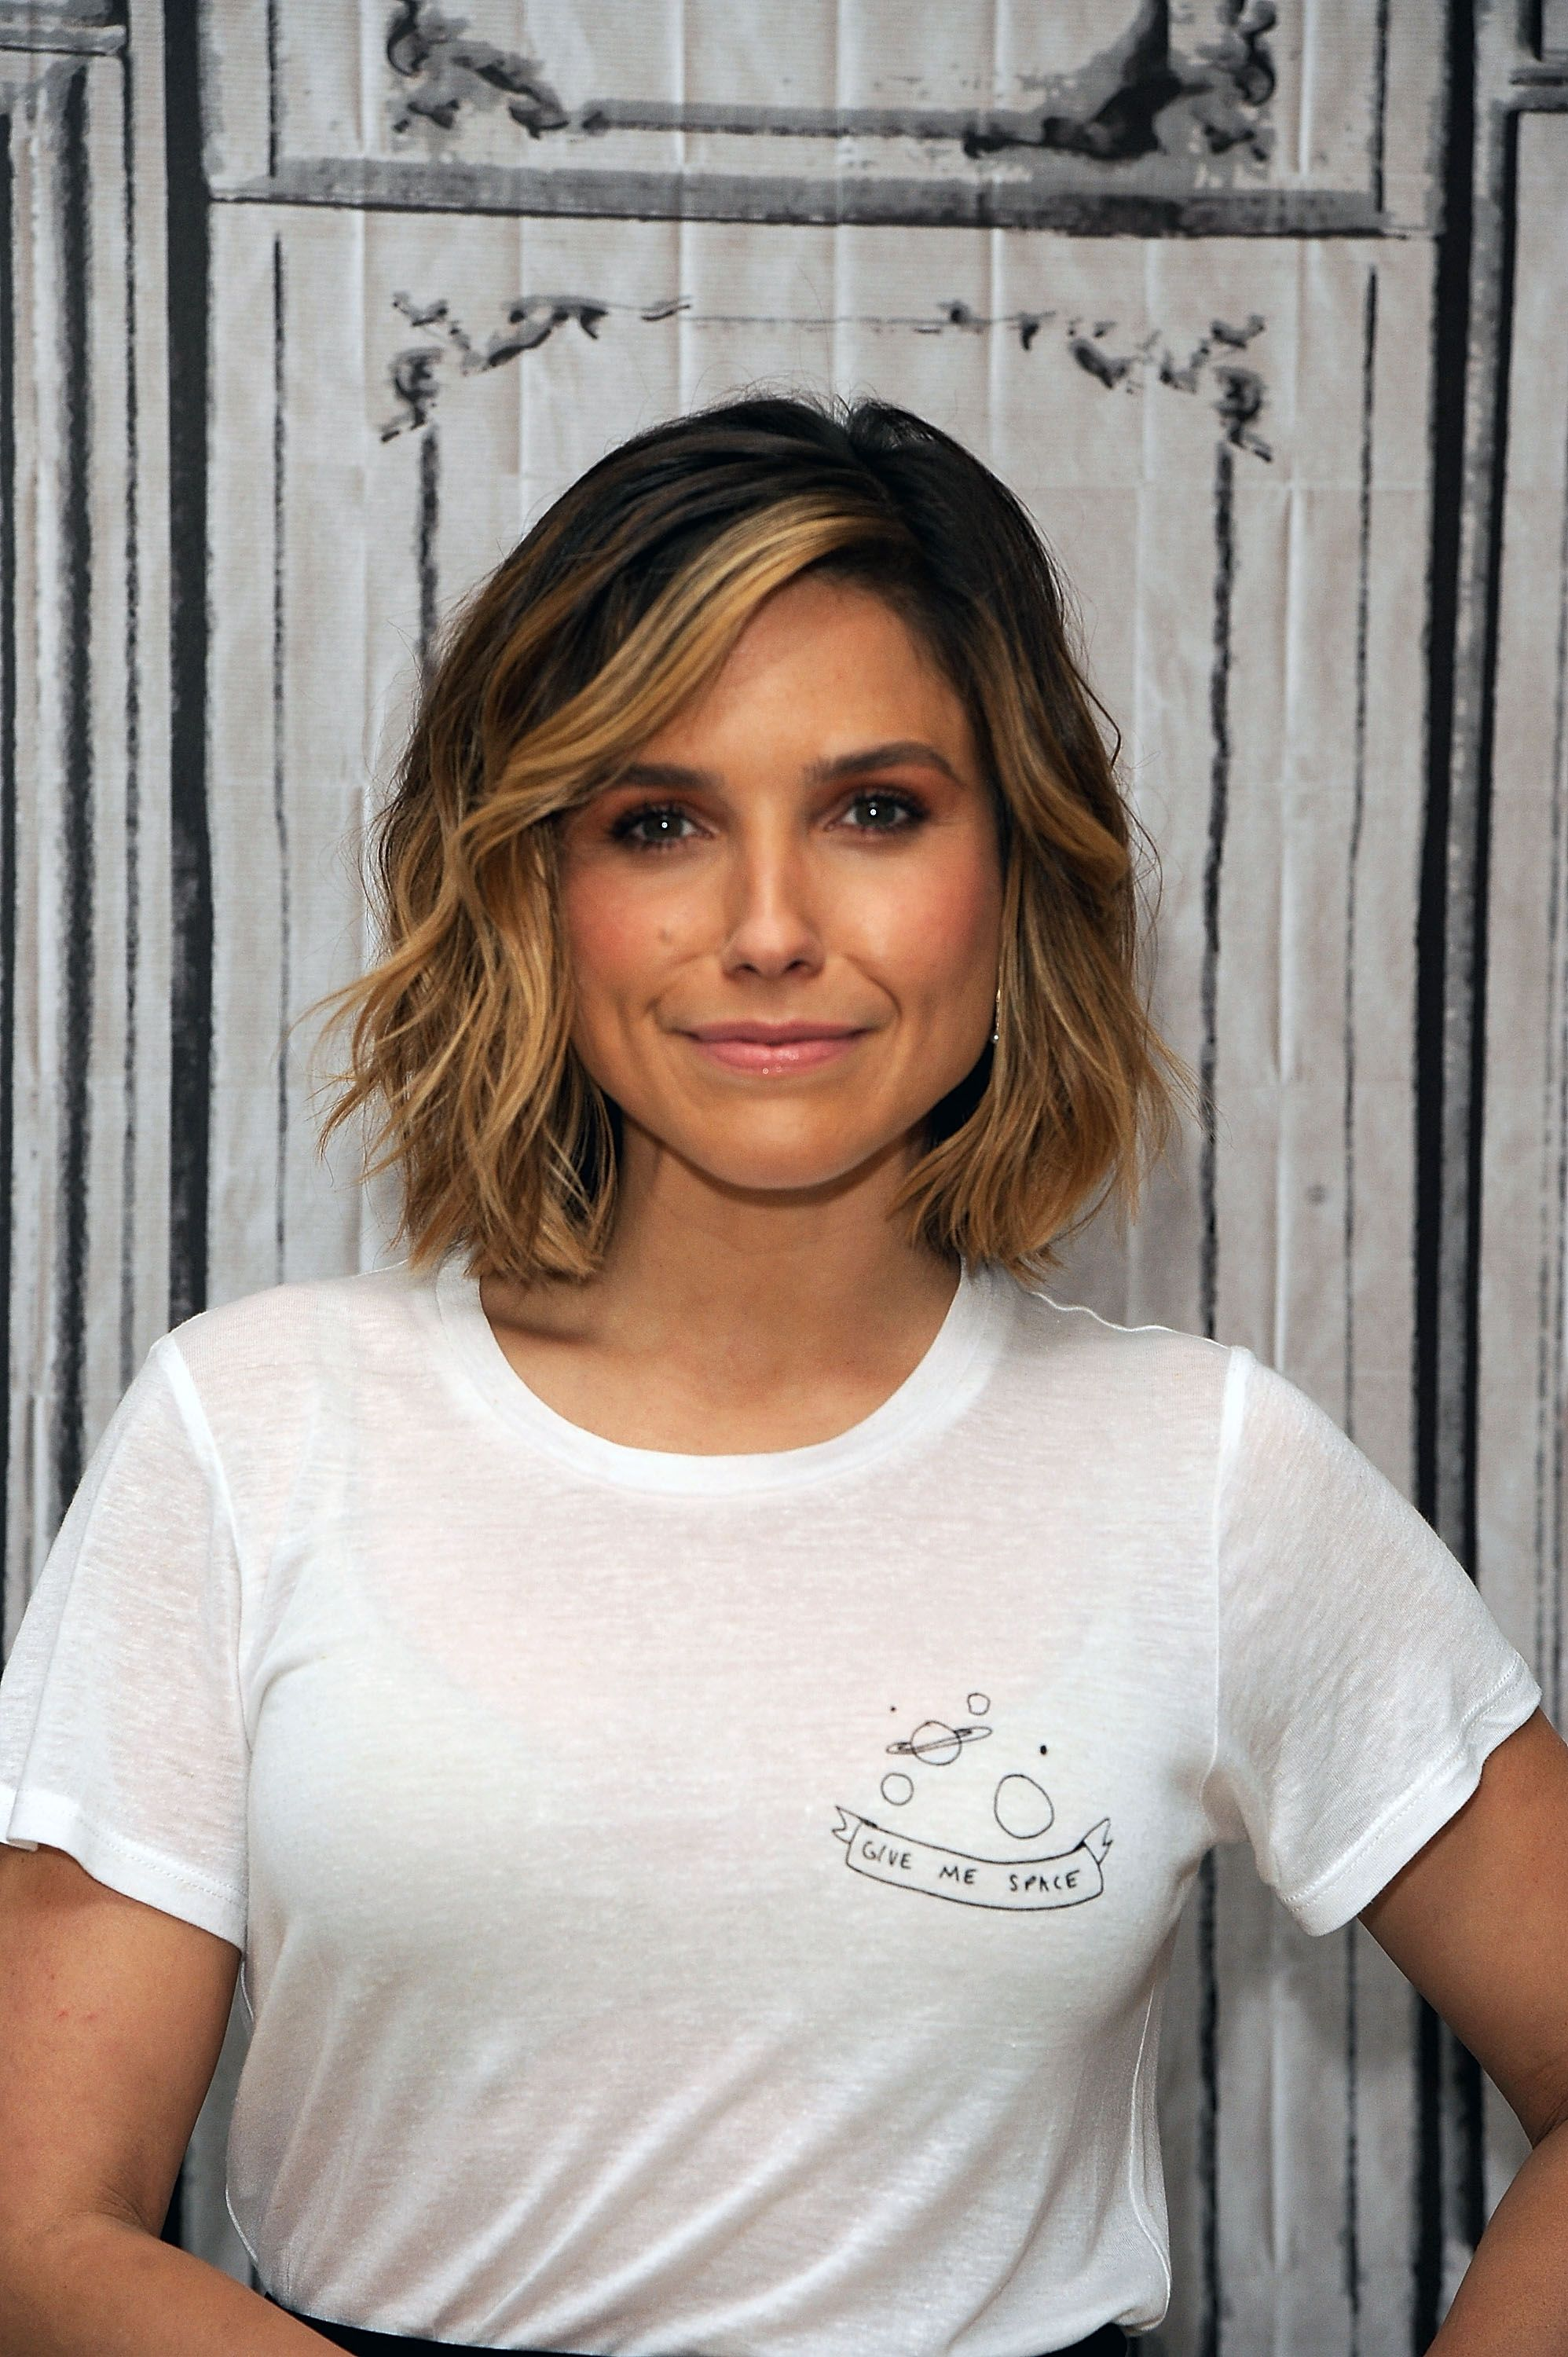 Hair trends 2015: 28 A-List approved styles to steal